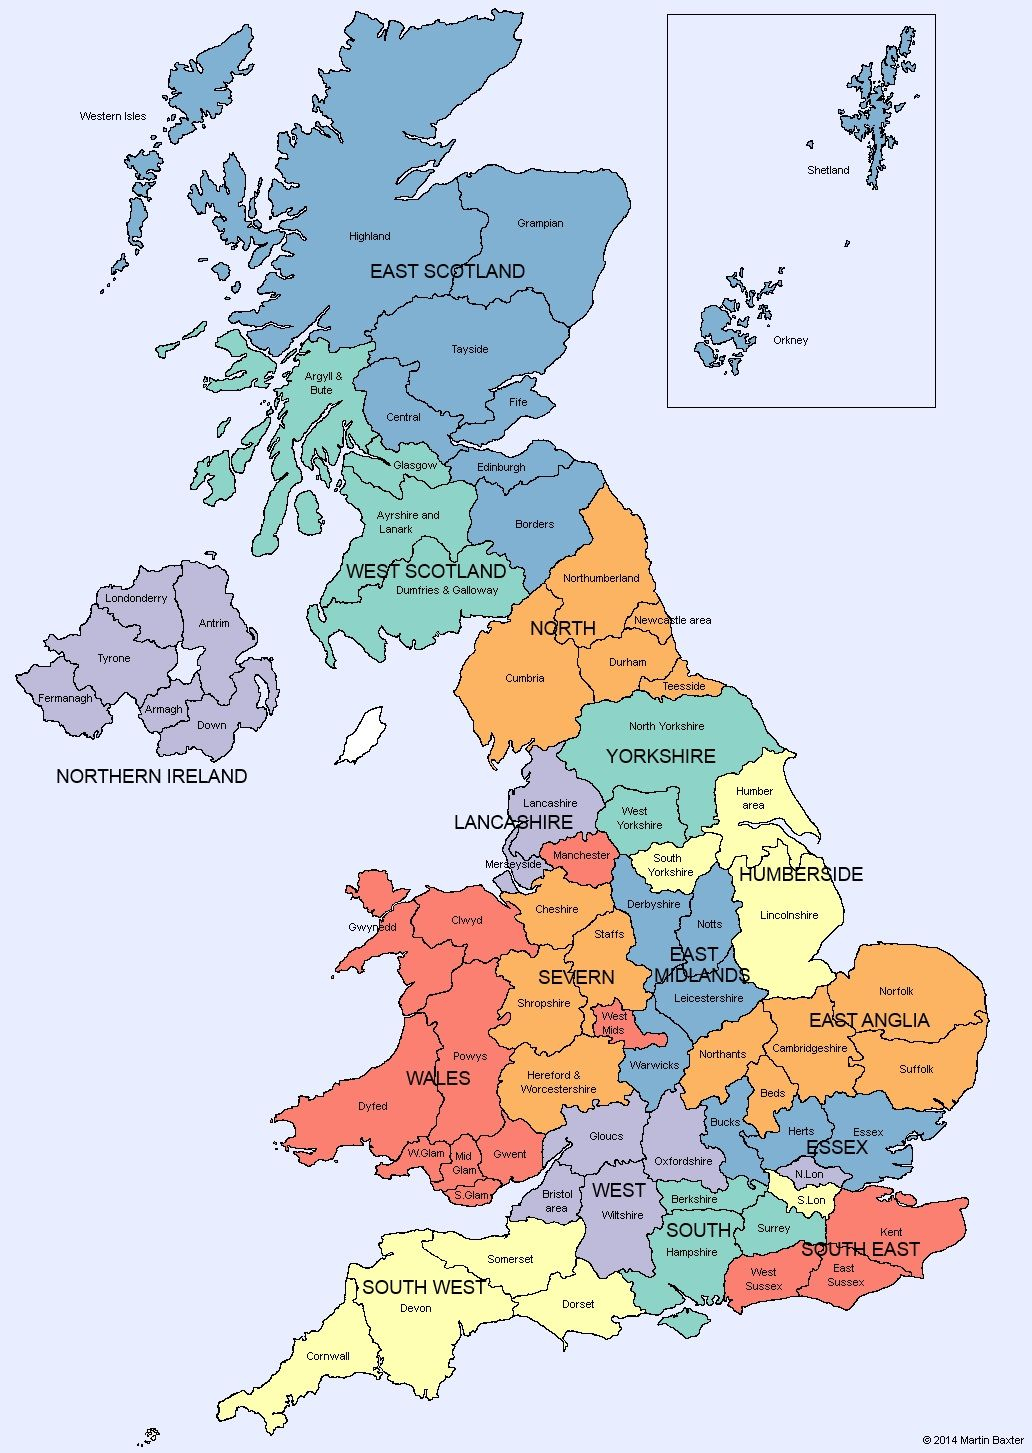 uk map of regions and counties of england scotland wales and northern ireland